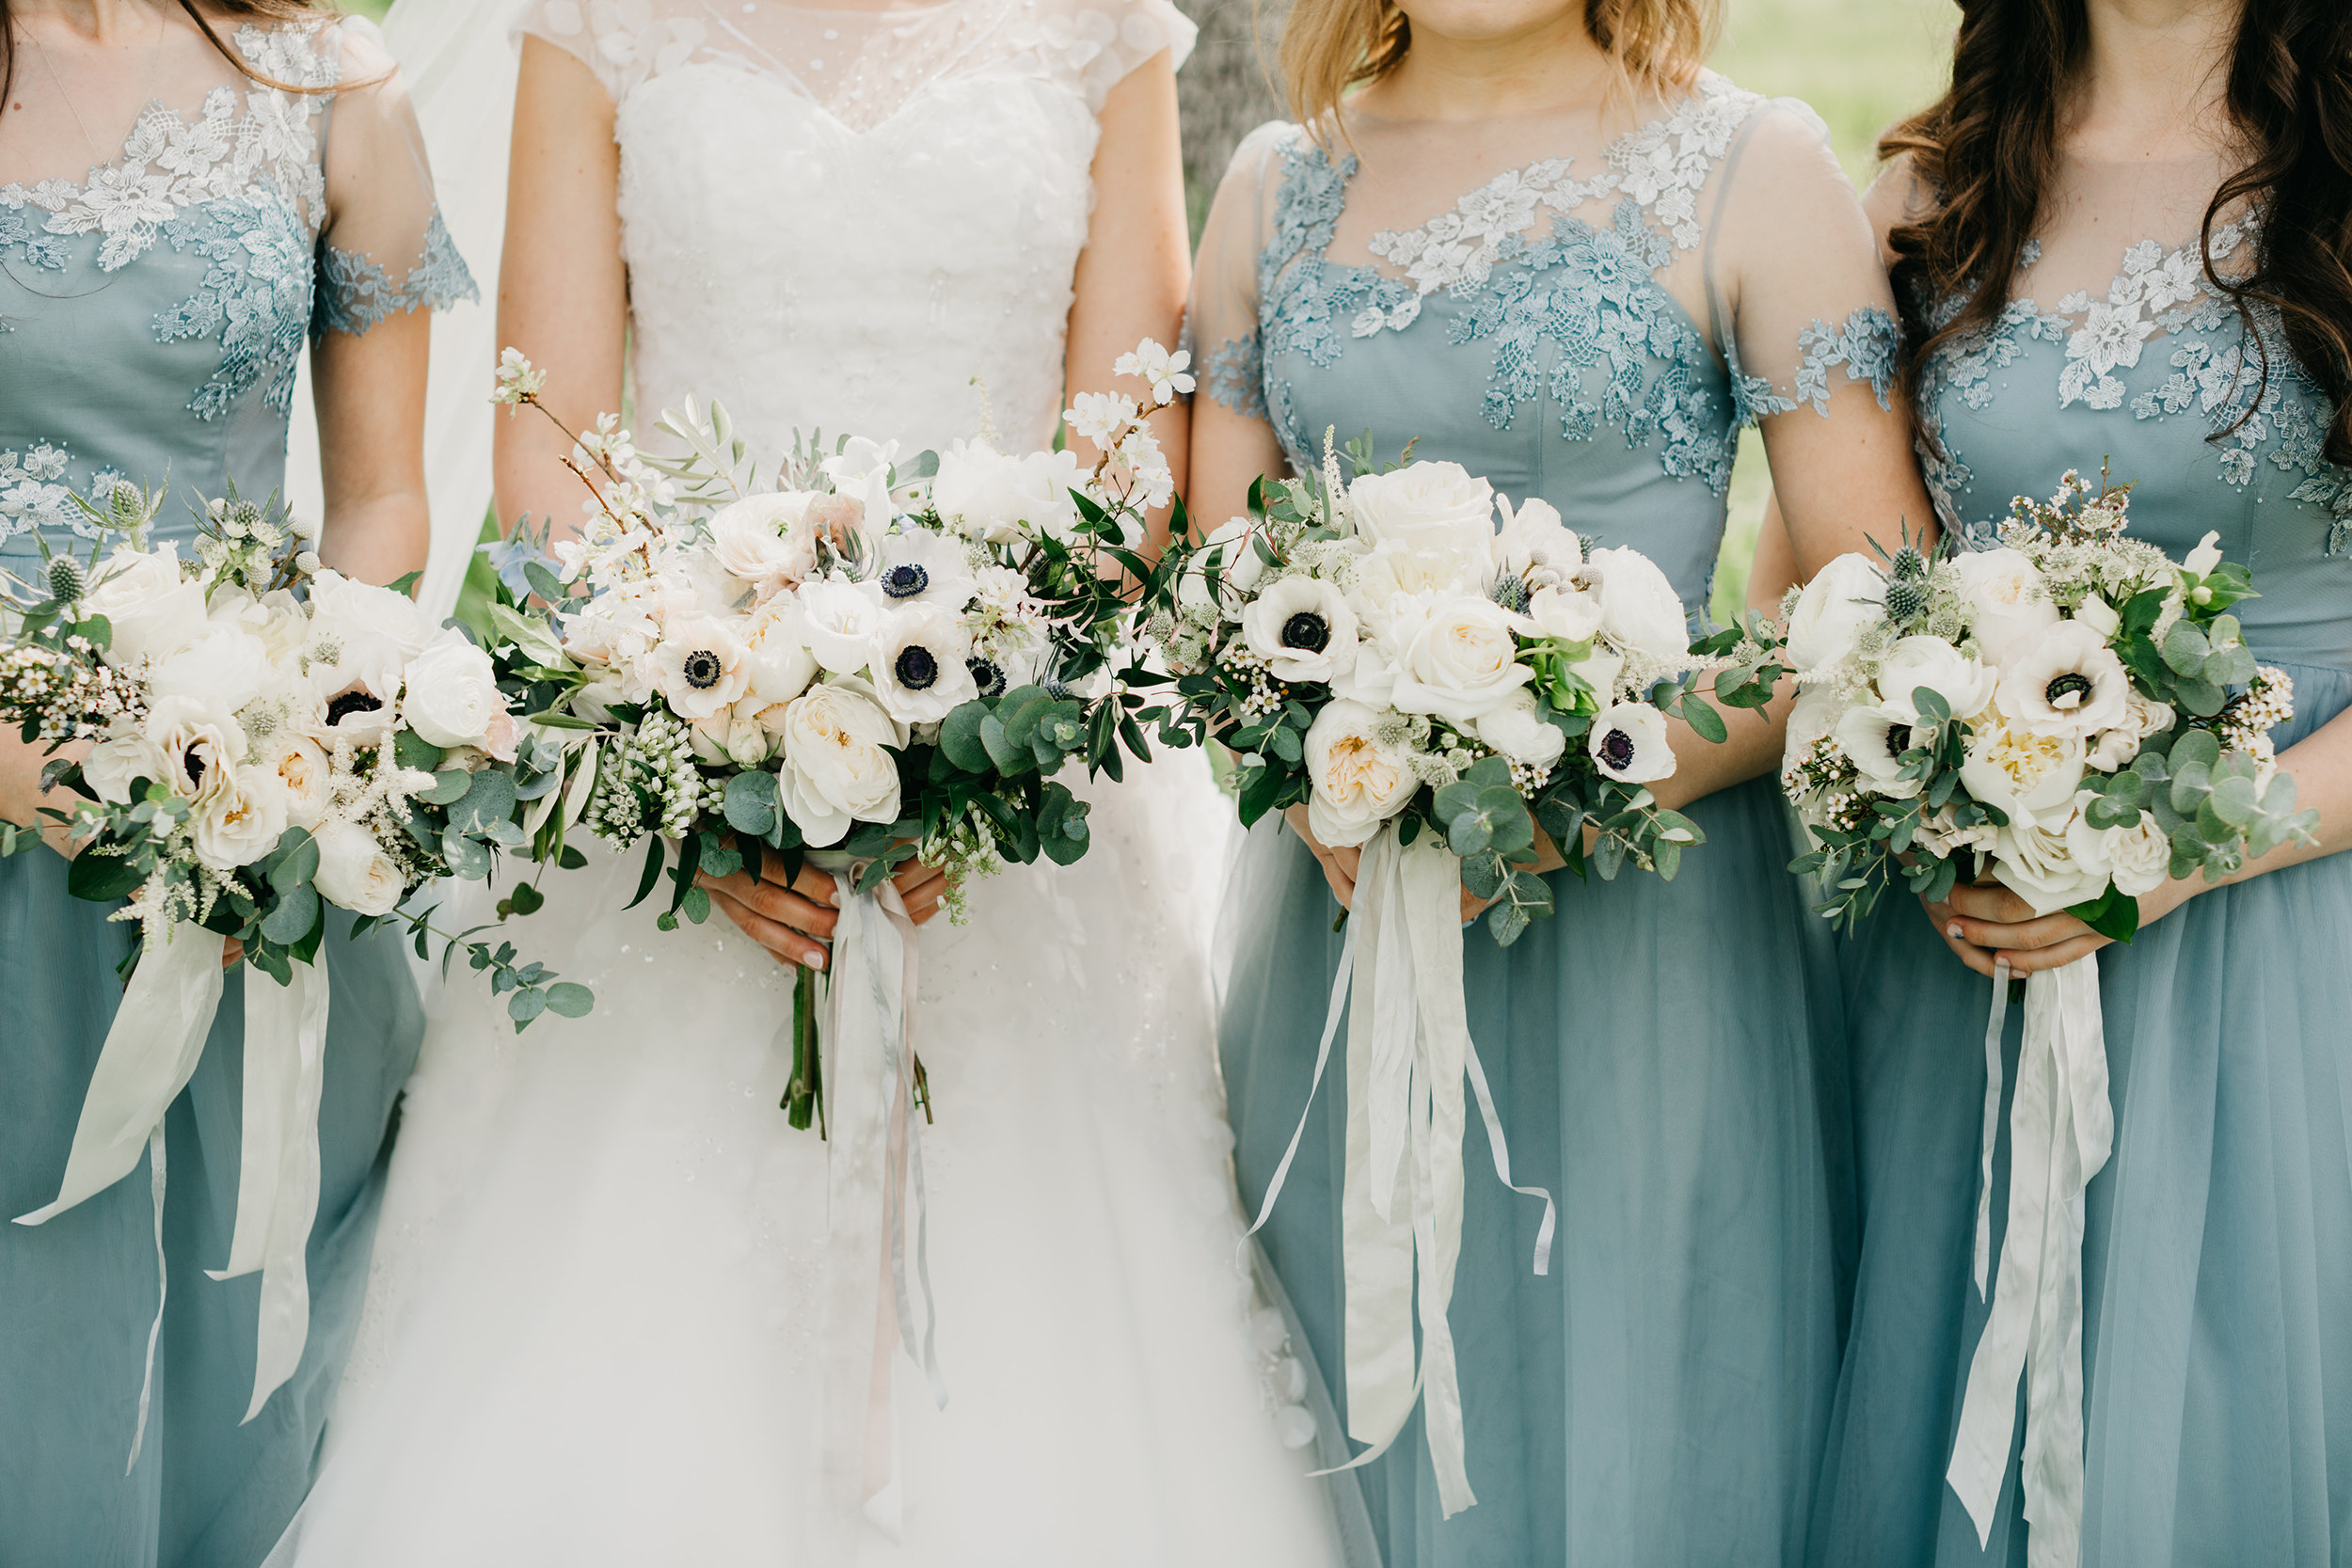 Violette-fleurs-event-design-roseville-Nelli-noel-photography-the-falls-event-center-Bliss-Design-Detail-Beautiful-Elegant-Florist-bride-bridesmaids.jpg